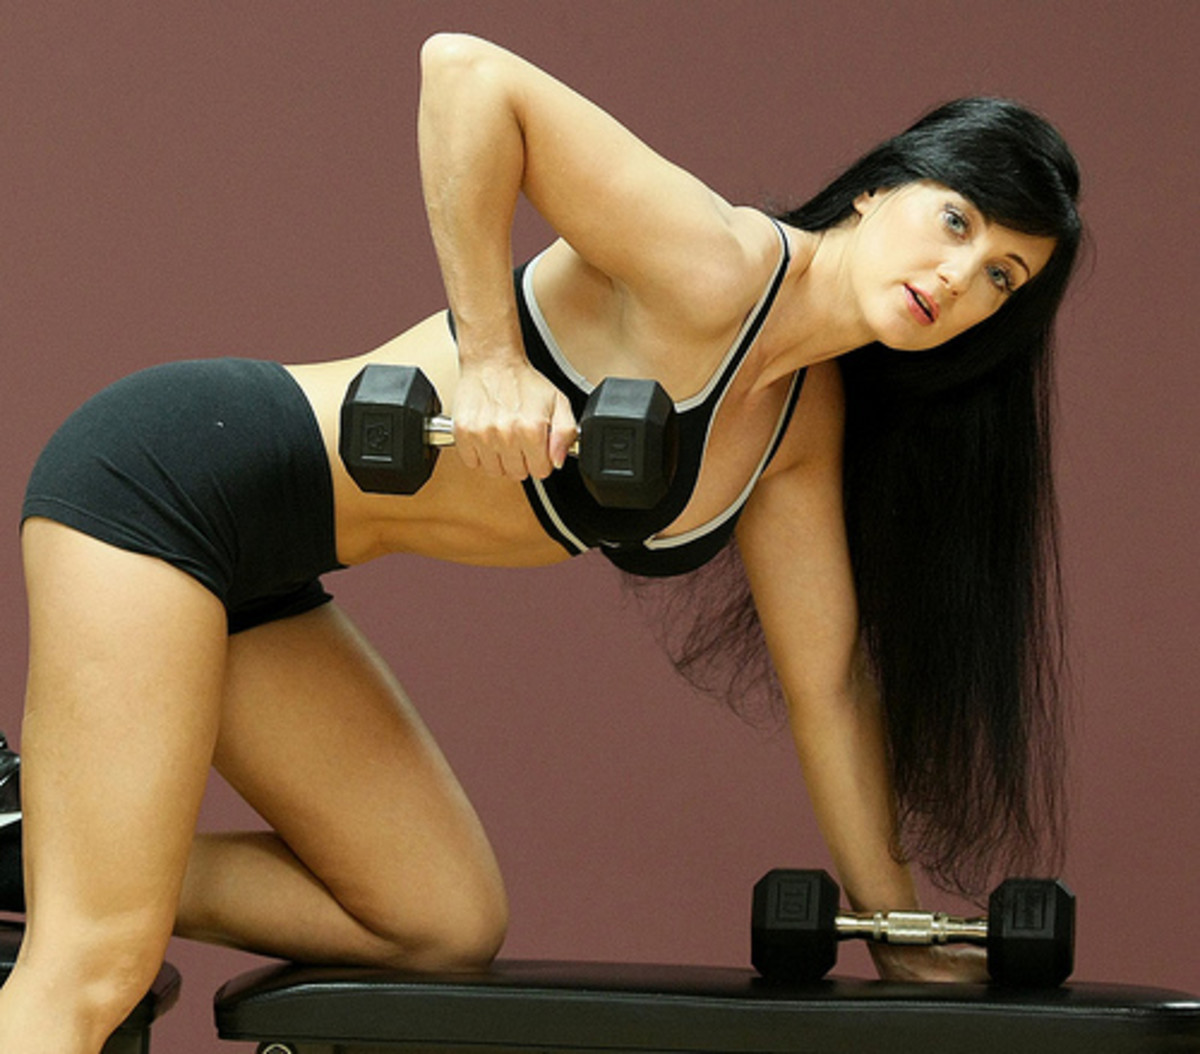 Dumbbell bent-over rowing is great for the back and biceps.